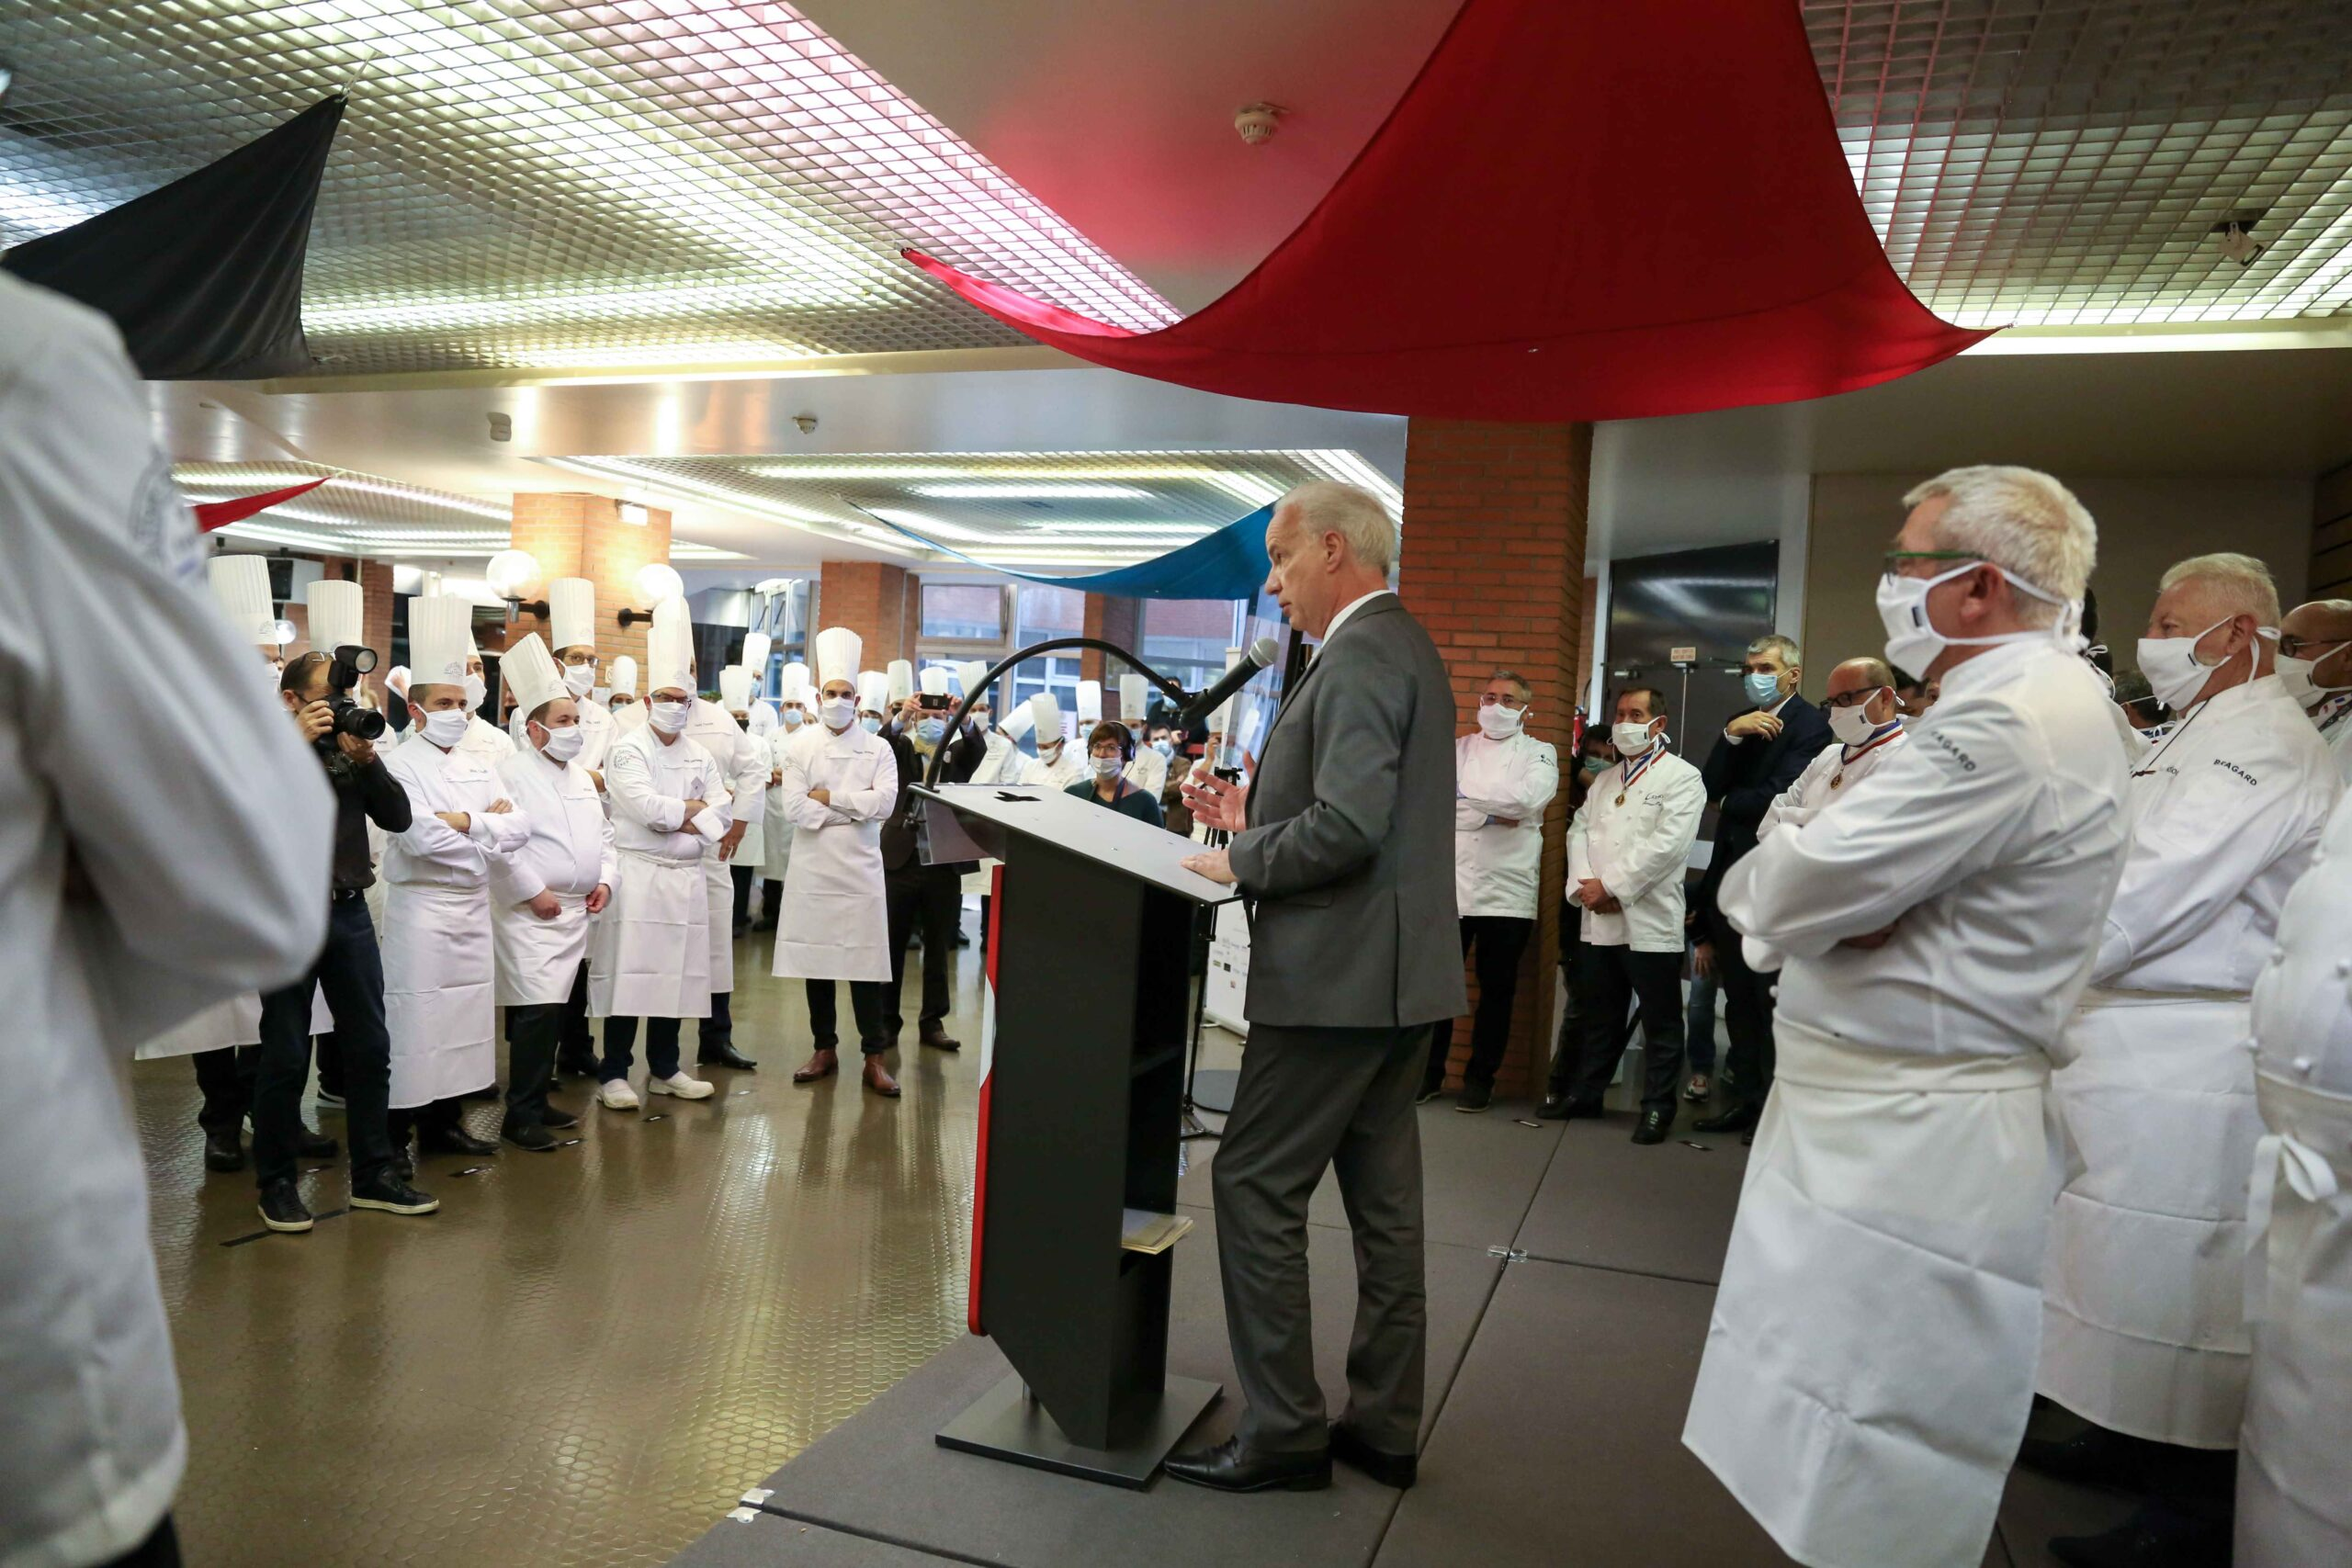 French Junior Minister of Small and Medium Entreprises Alain Griset (C) is speaking in the Culinary Professions Centre of Excellence (Centre d'excellence des professions culinaires – CEPROC) for the awards ceremony of the Grand Prix of France for artis